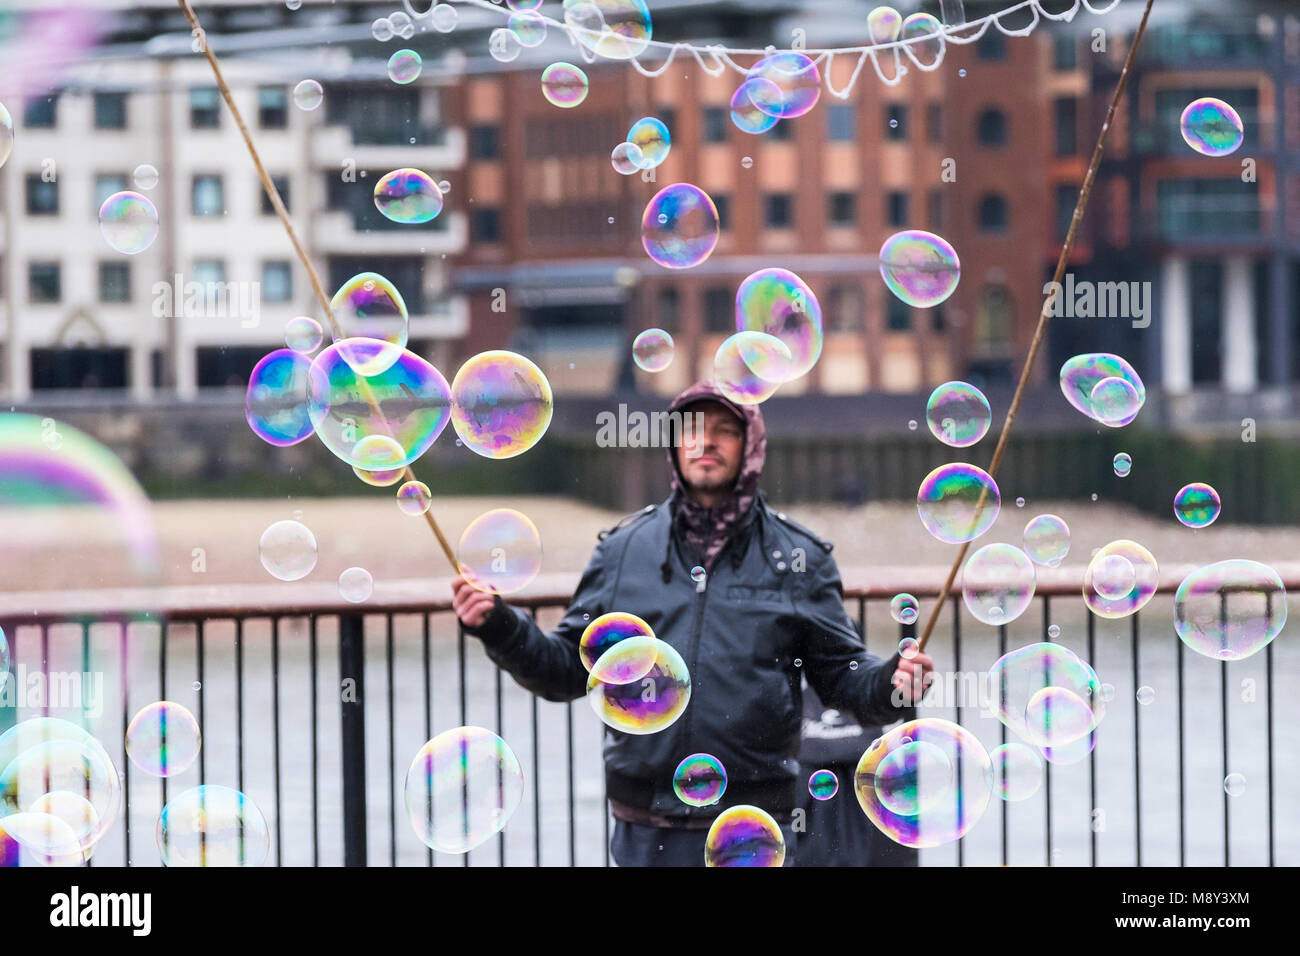 A man creating colourful bubbles on the South Bank in London. - Stock Image